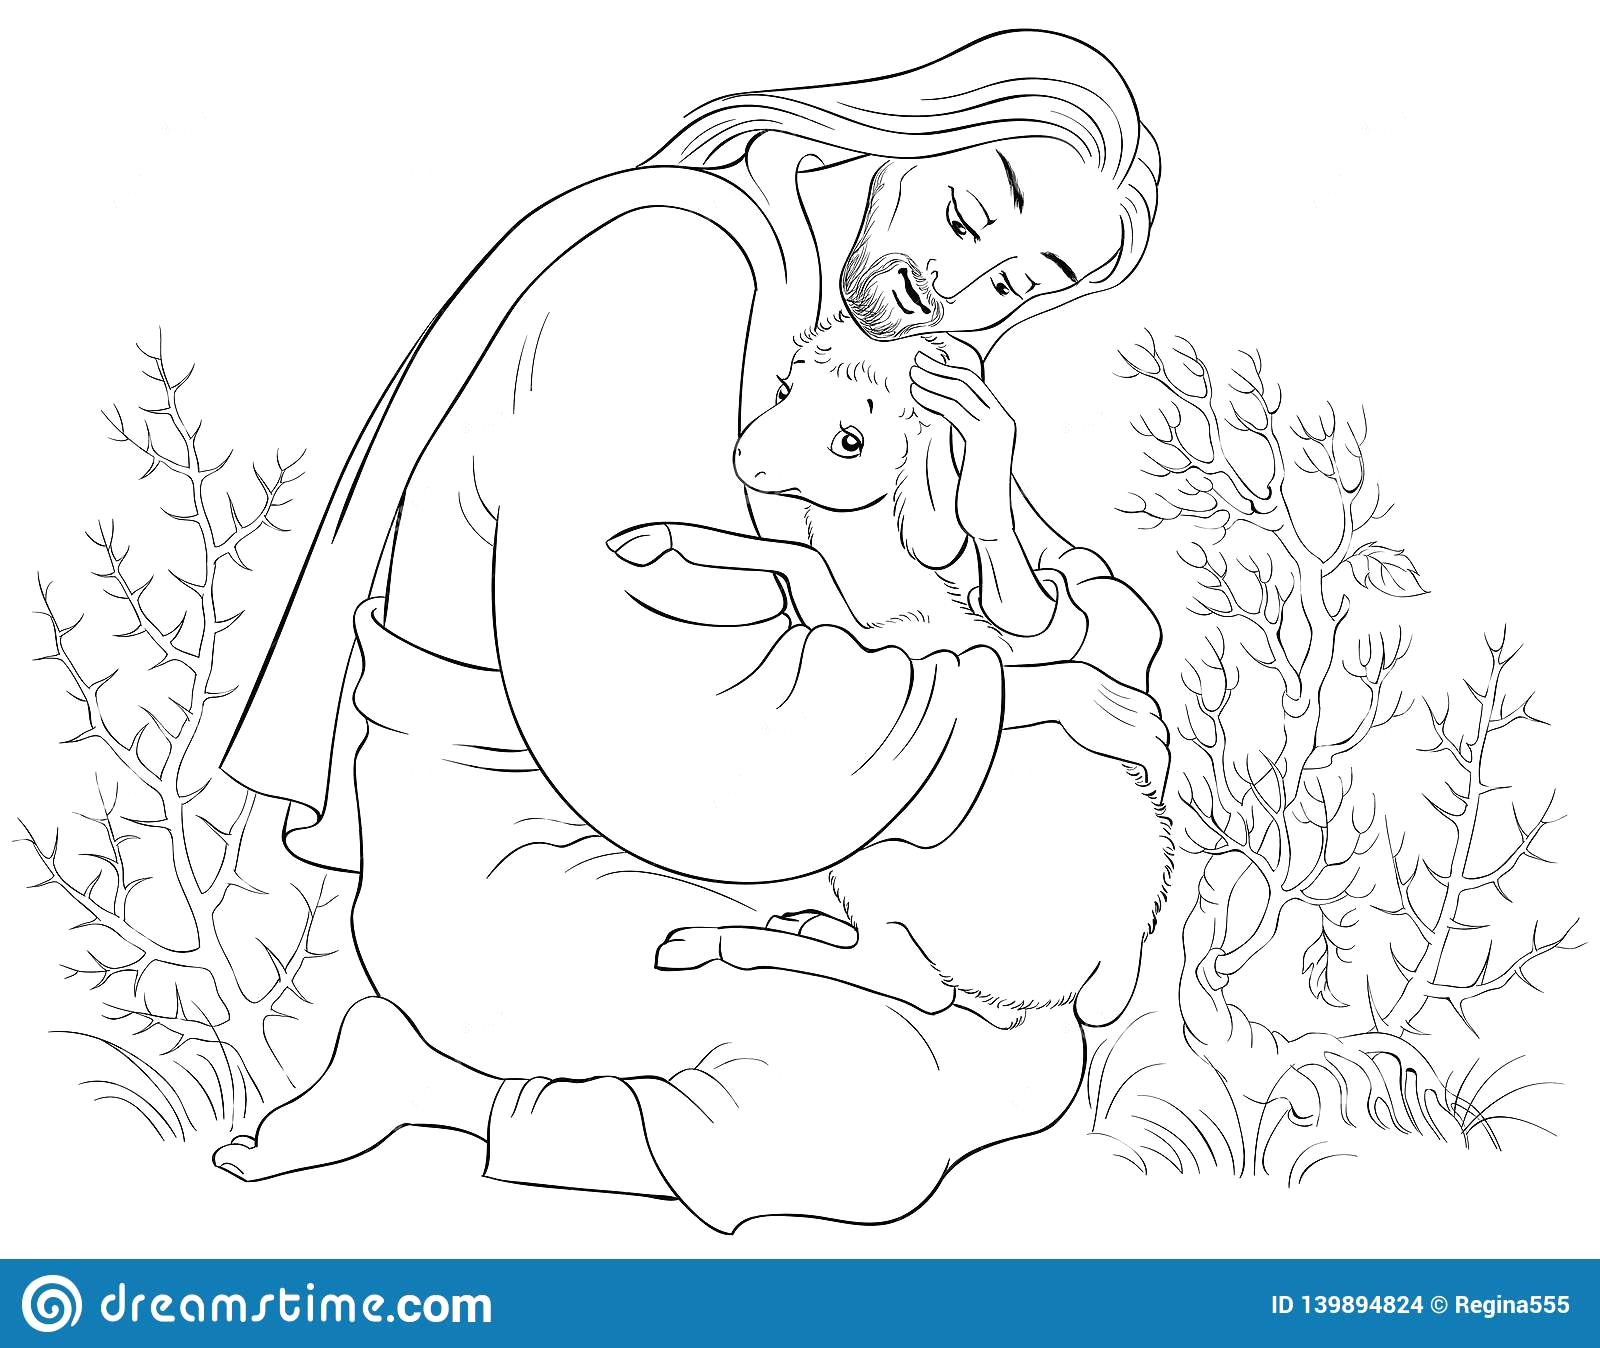 history jesus christ parable lost sheep good shepherd rescuing lamb caught thorns coloring page standard scenes image